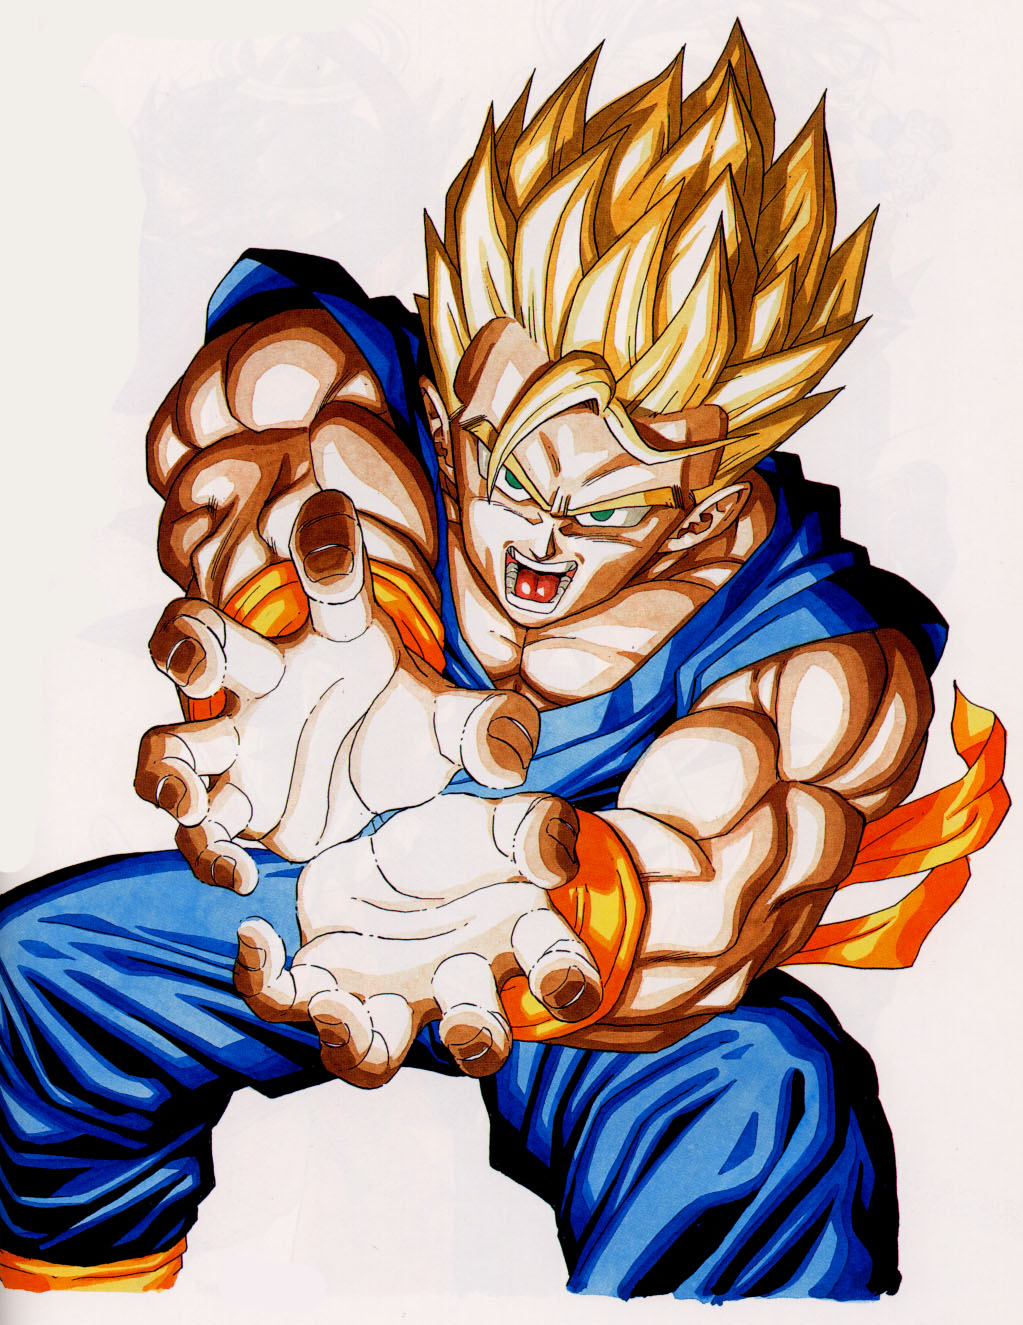 Dragon Ball Z Dragon Ball Z Android 1023x1325 Wallpaper Teahub Io